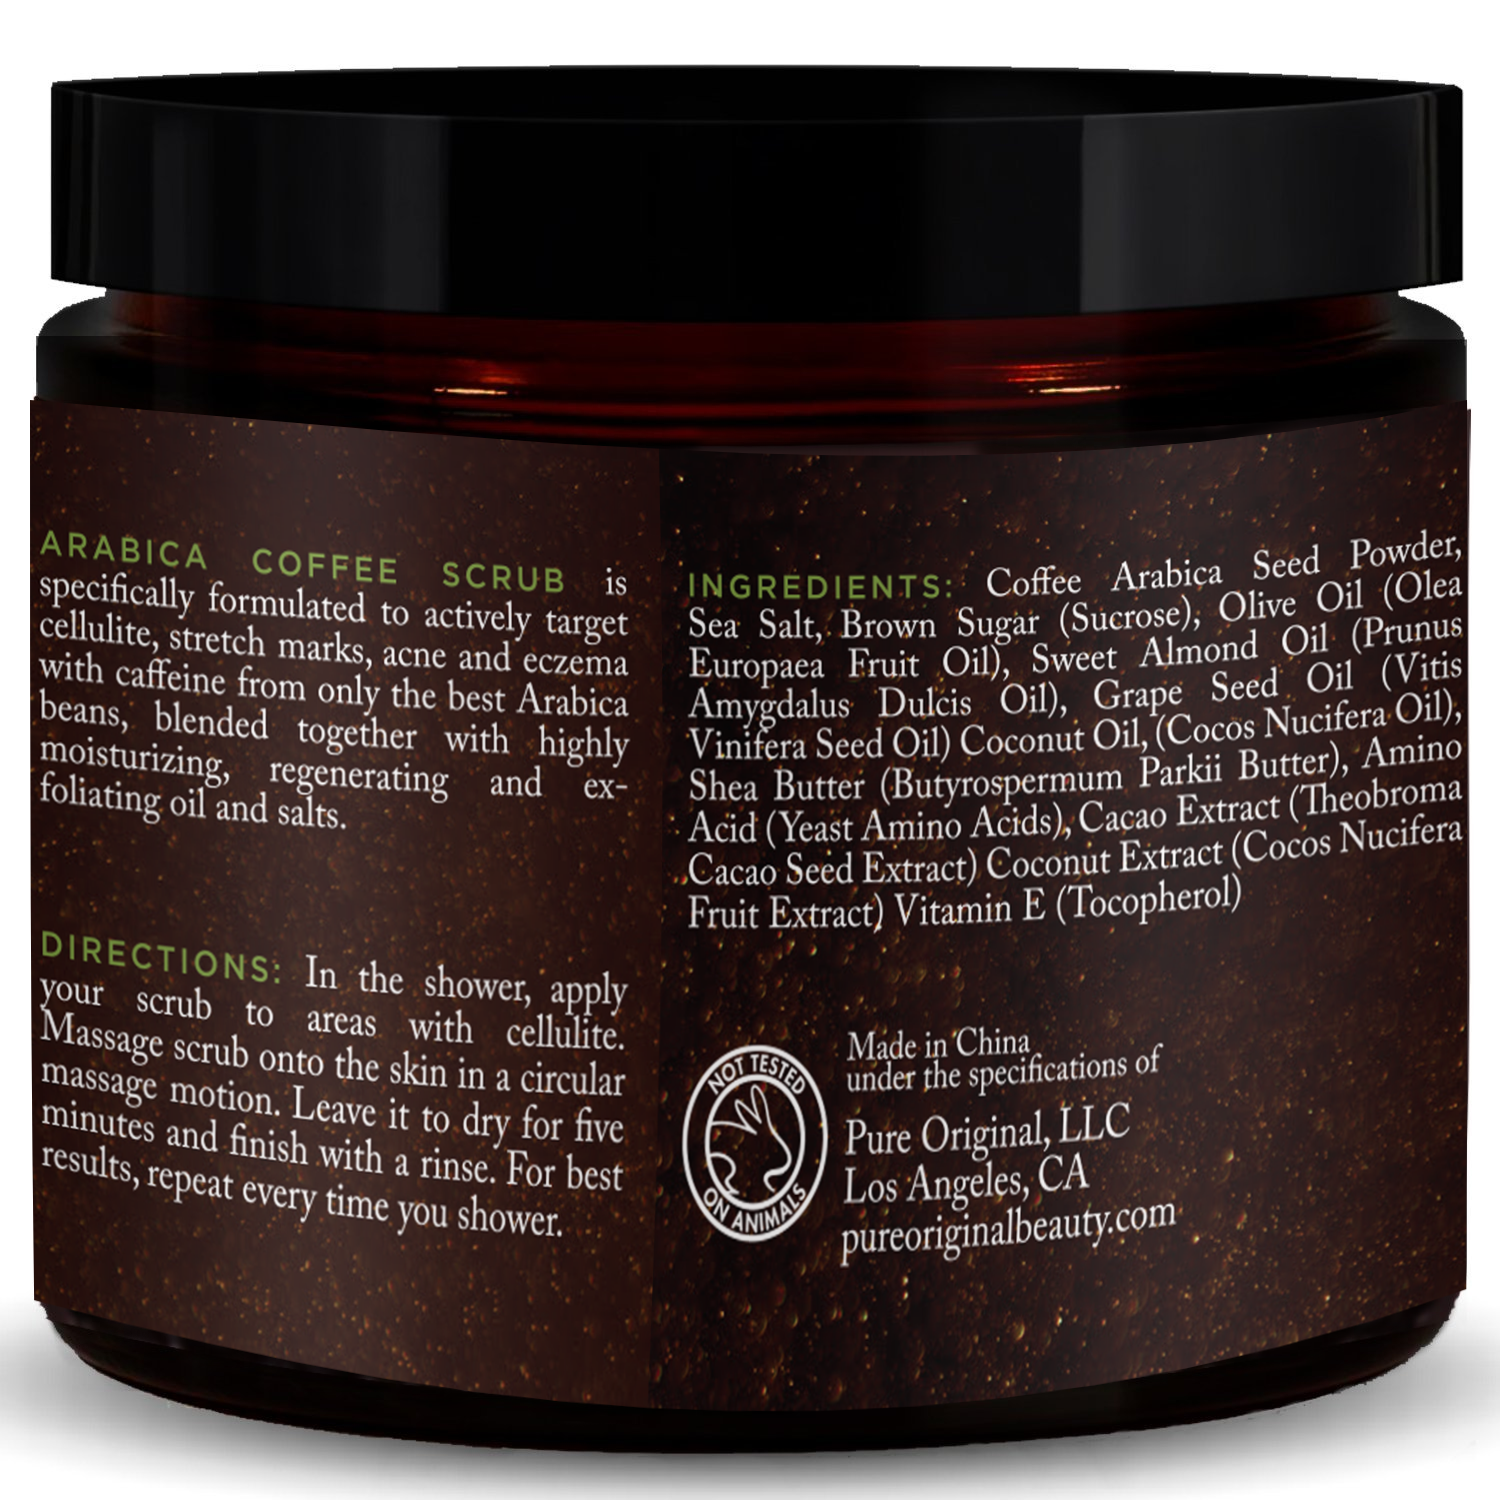 Coffee-Scrub-on-Jar-Back